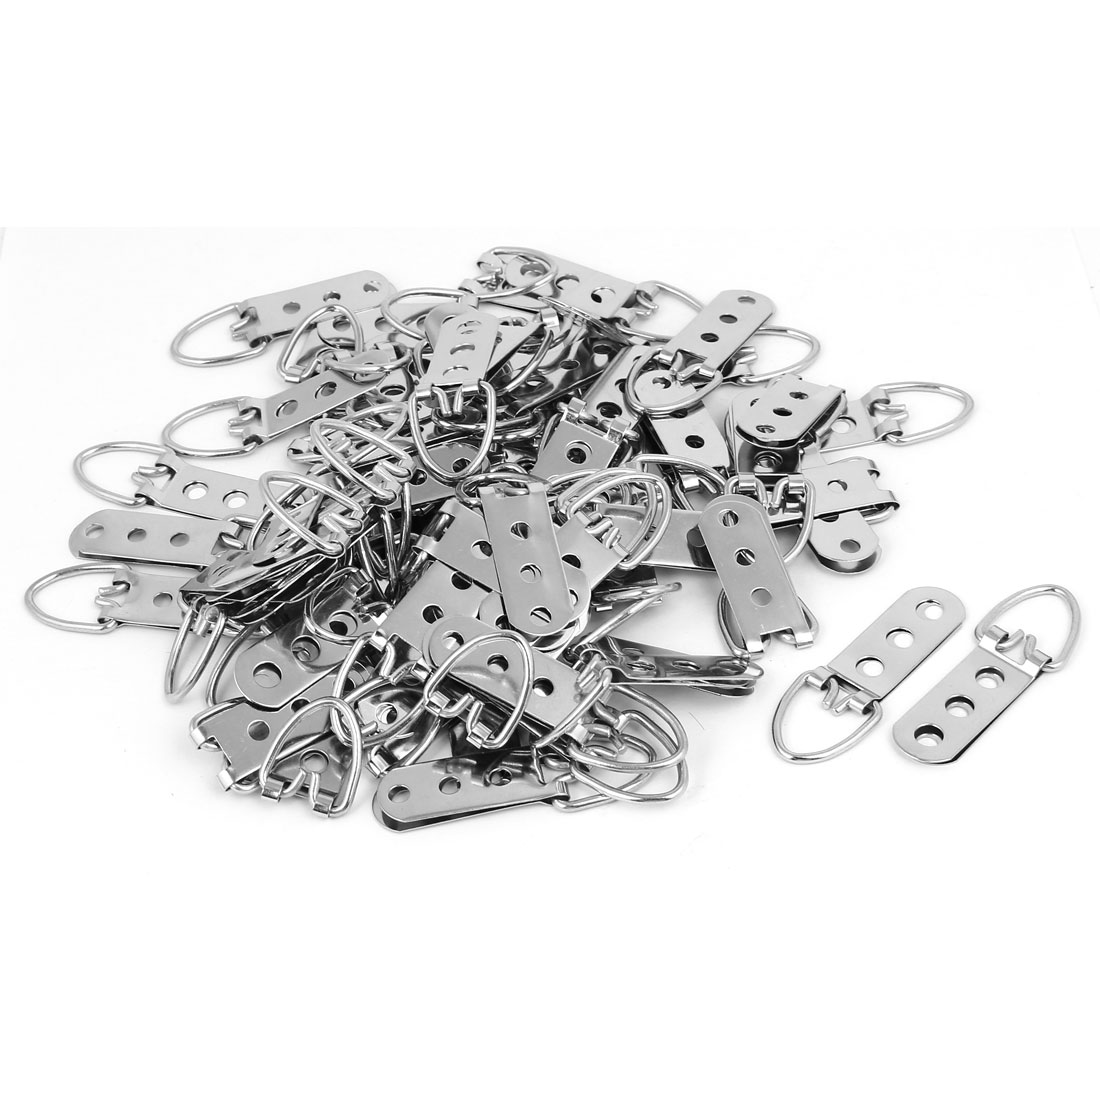 65mmx22mm Iron Three Holes D-Ring Picture Frame Strap Hanging Hanger 100pcs